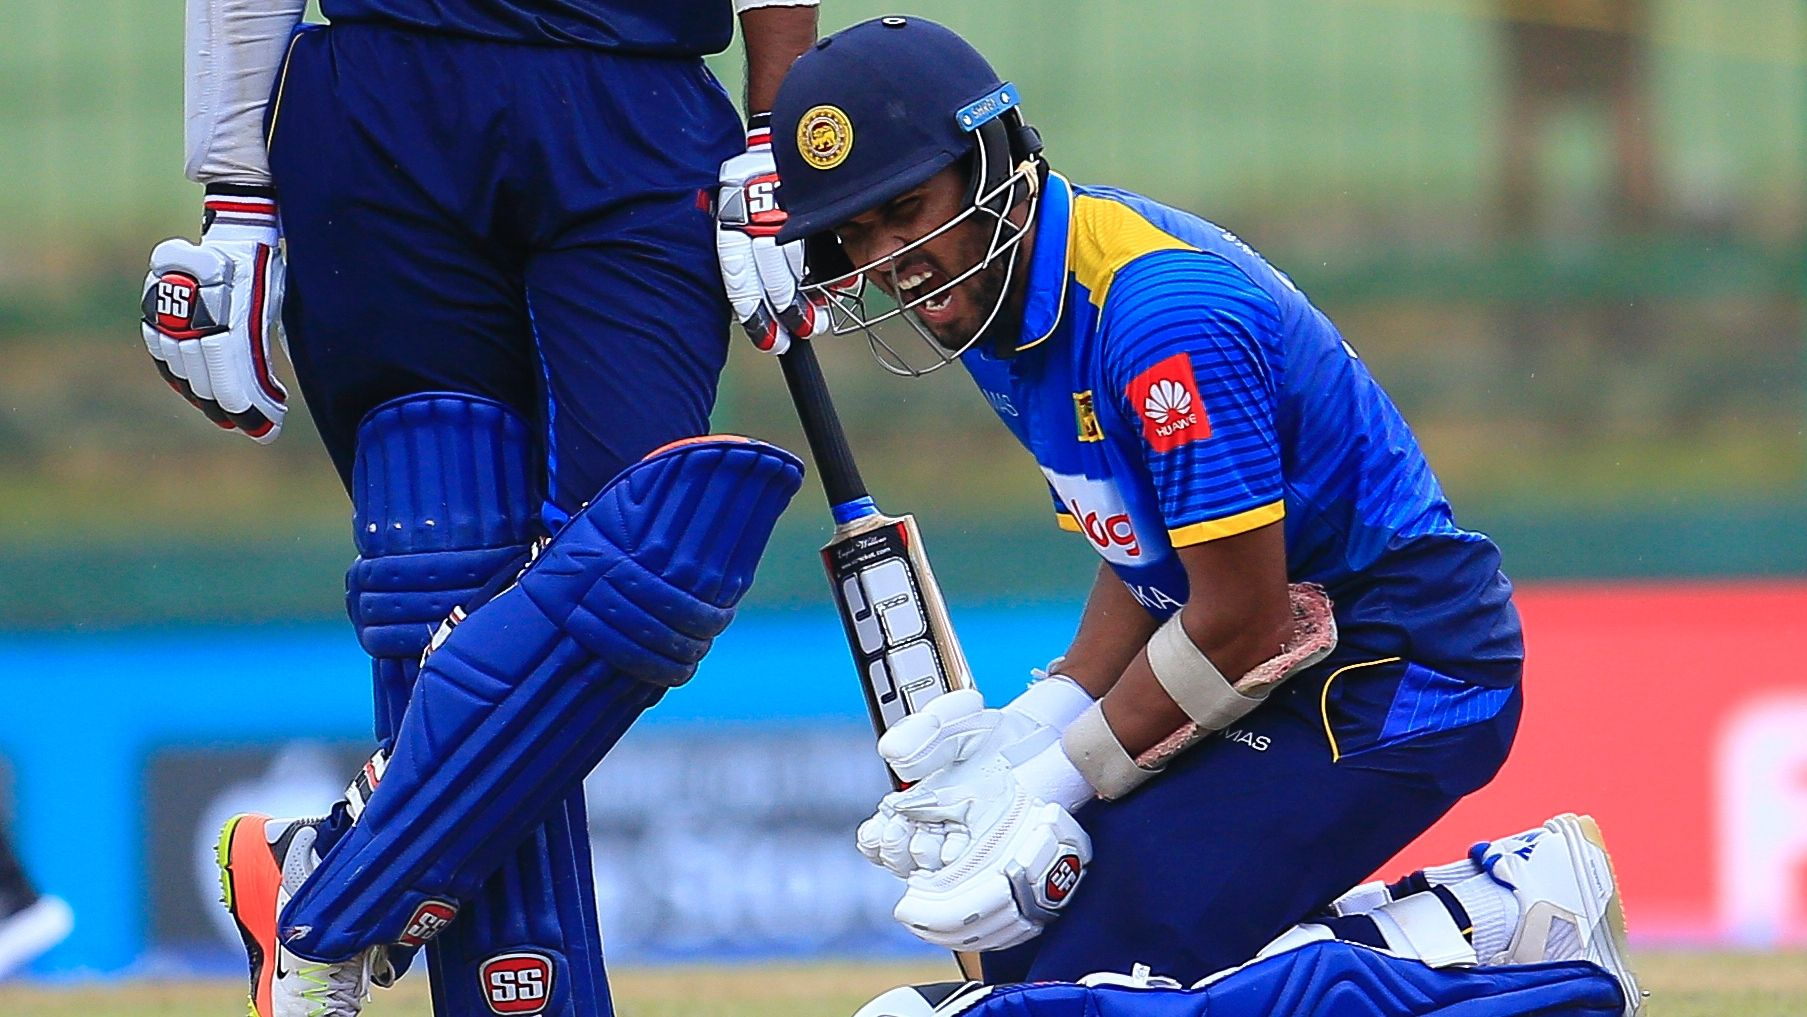 3rd ODI (D/N), India tour of Sri Lanka at Kandy, Aug 27 2017 ...